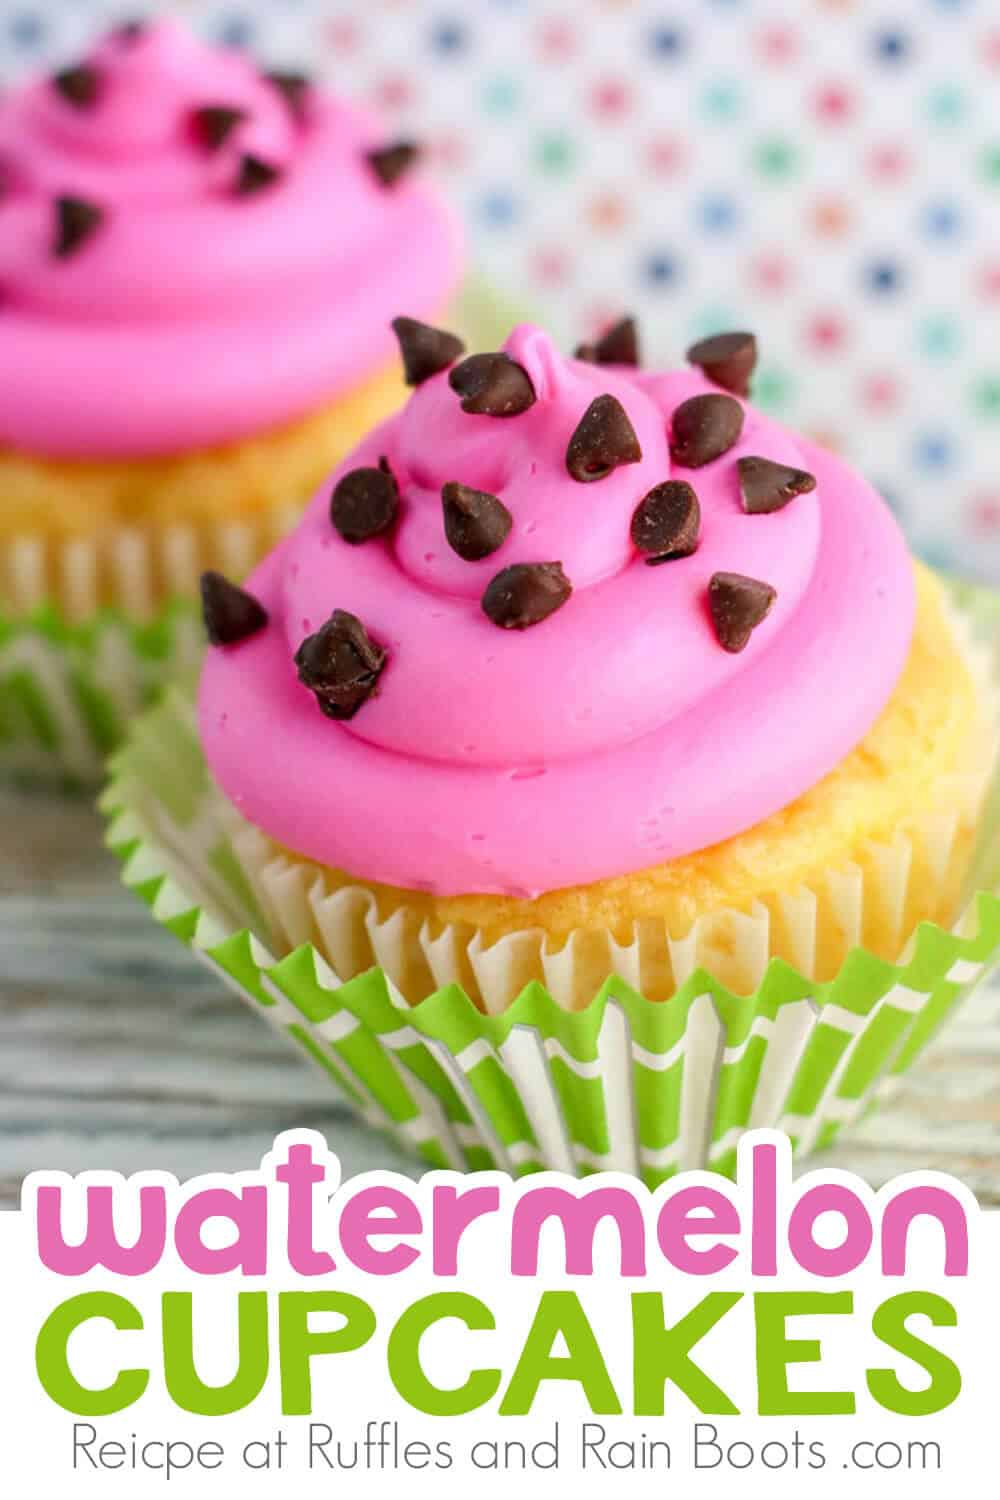 watermelon cupakes decorating idea on a wood table with a multicolored polkadot background with text which reads watermelon cupcakes